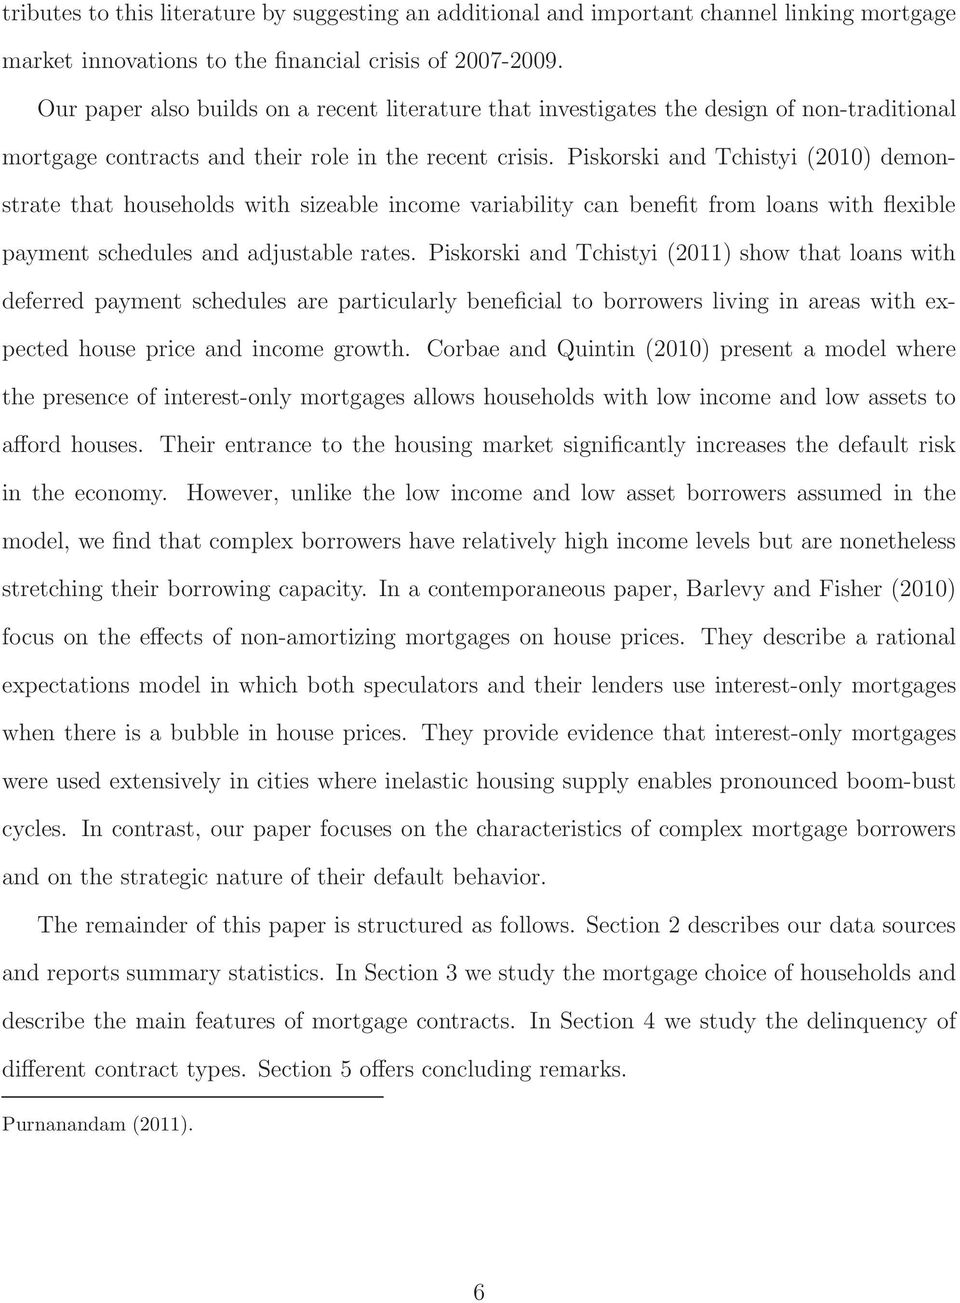 Piskorski and Tchistyi (2010) demonstrate that households with sizeable income variability can benefit from loans with flexible payment schedules and adjustable rates.